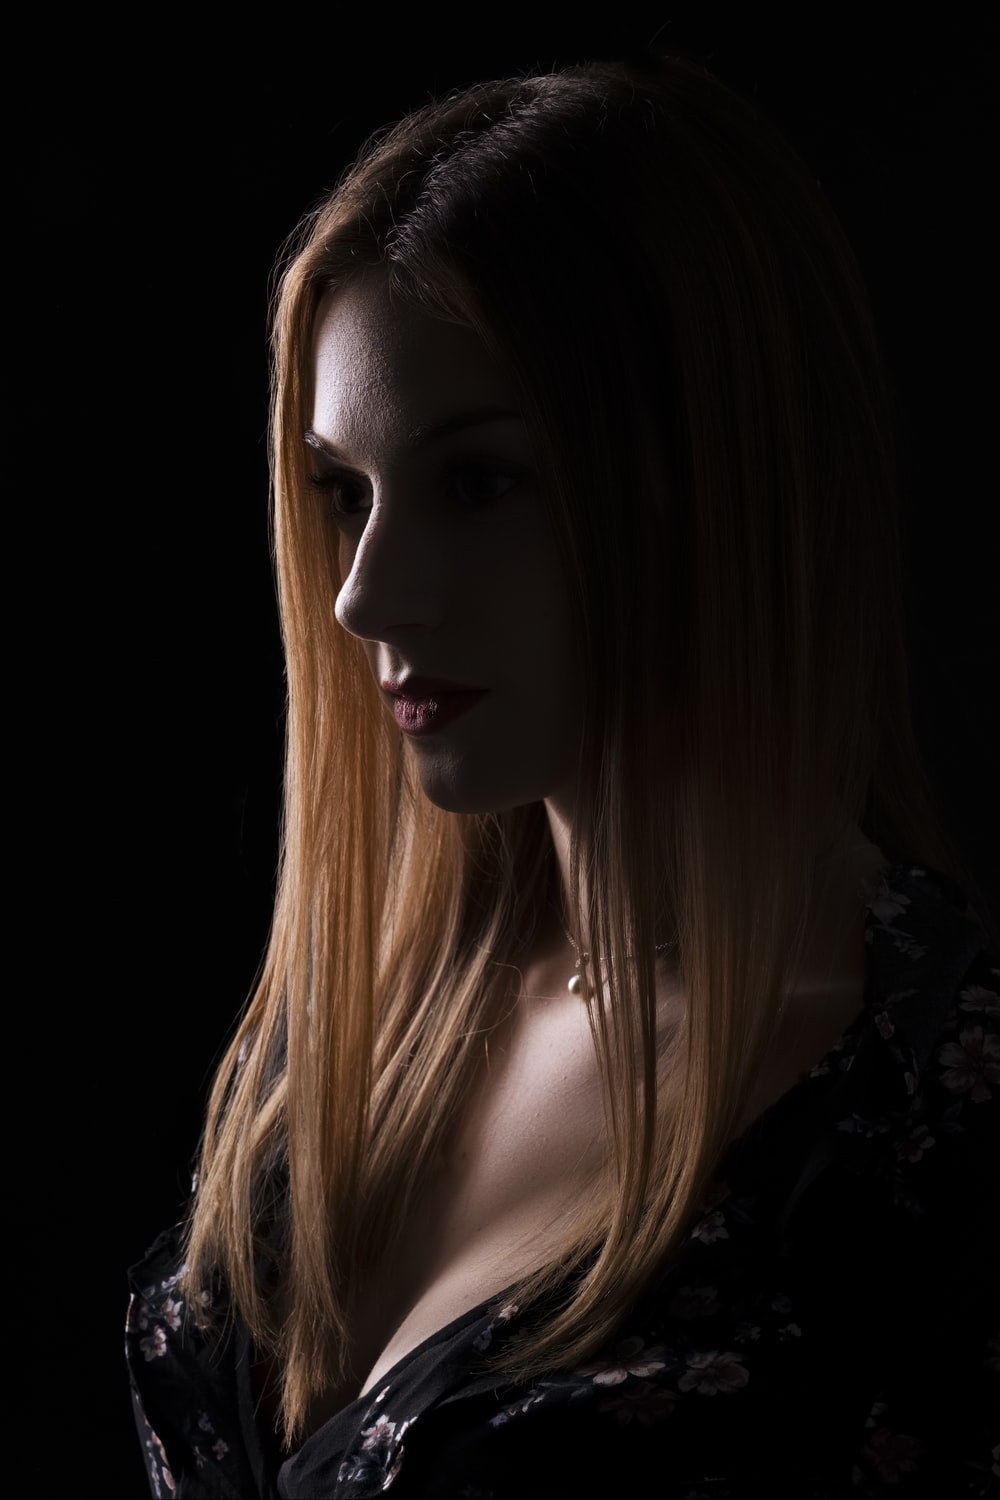 woman in black shirt with blonde hair